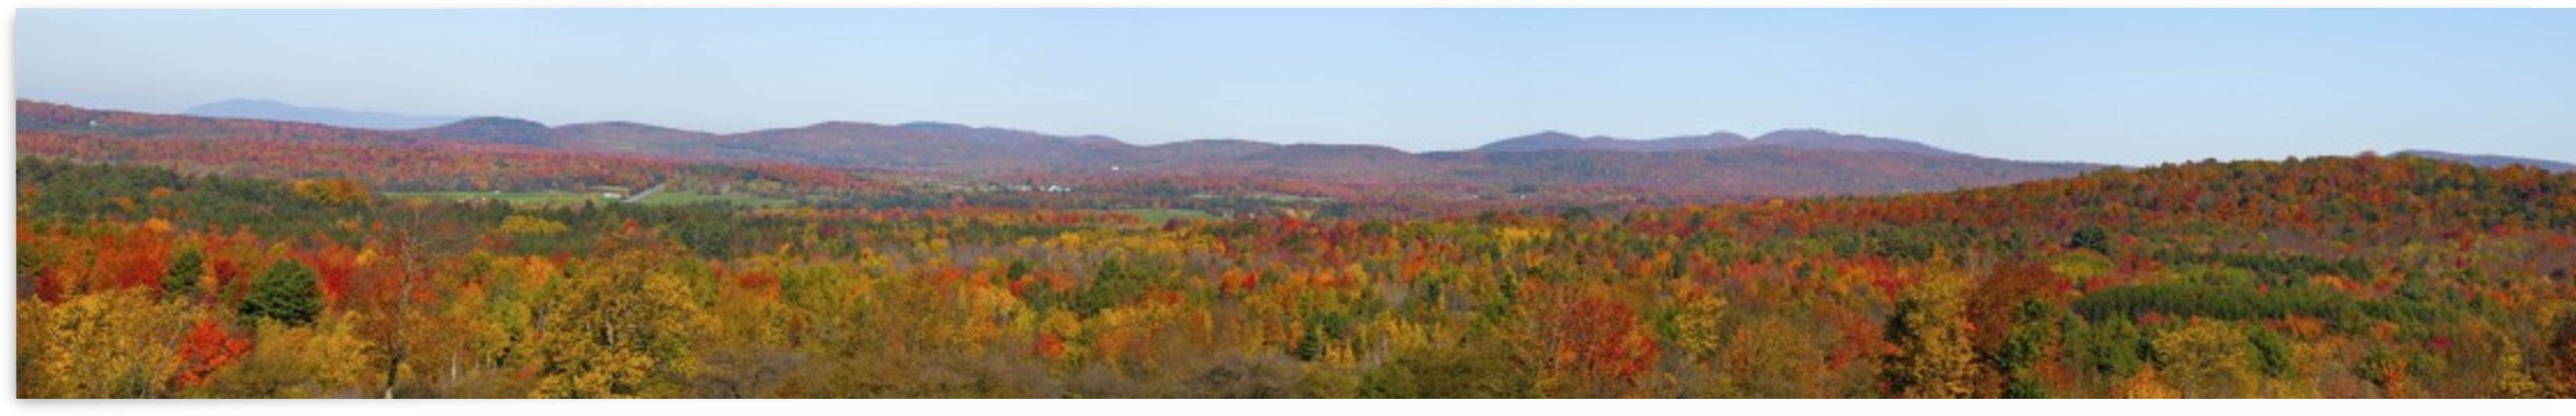 Autumn Panorama; Brome, Quebec, Canada by PacificStock